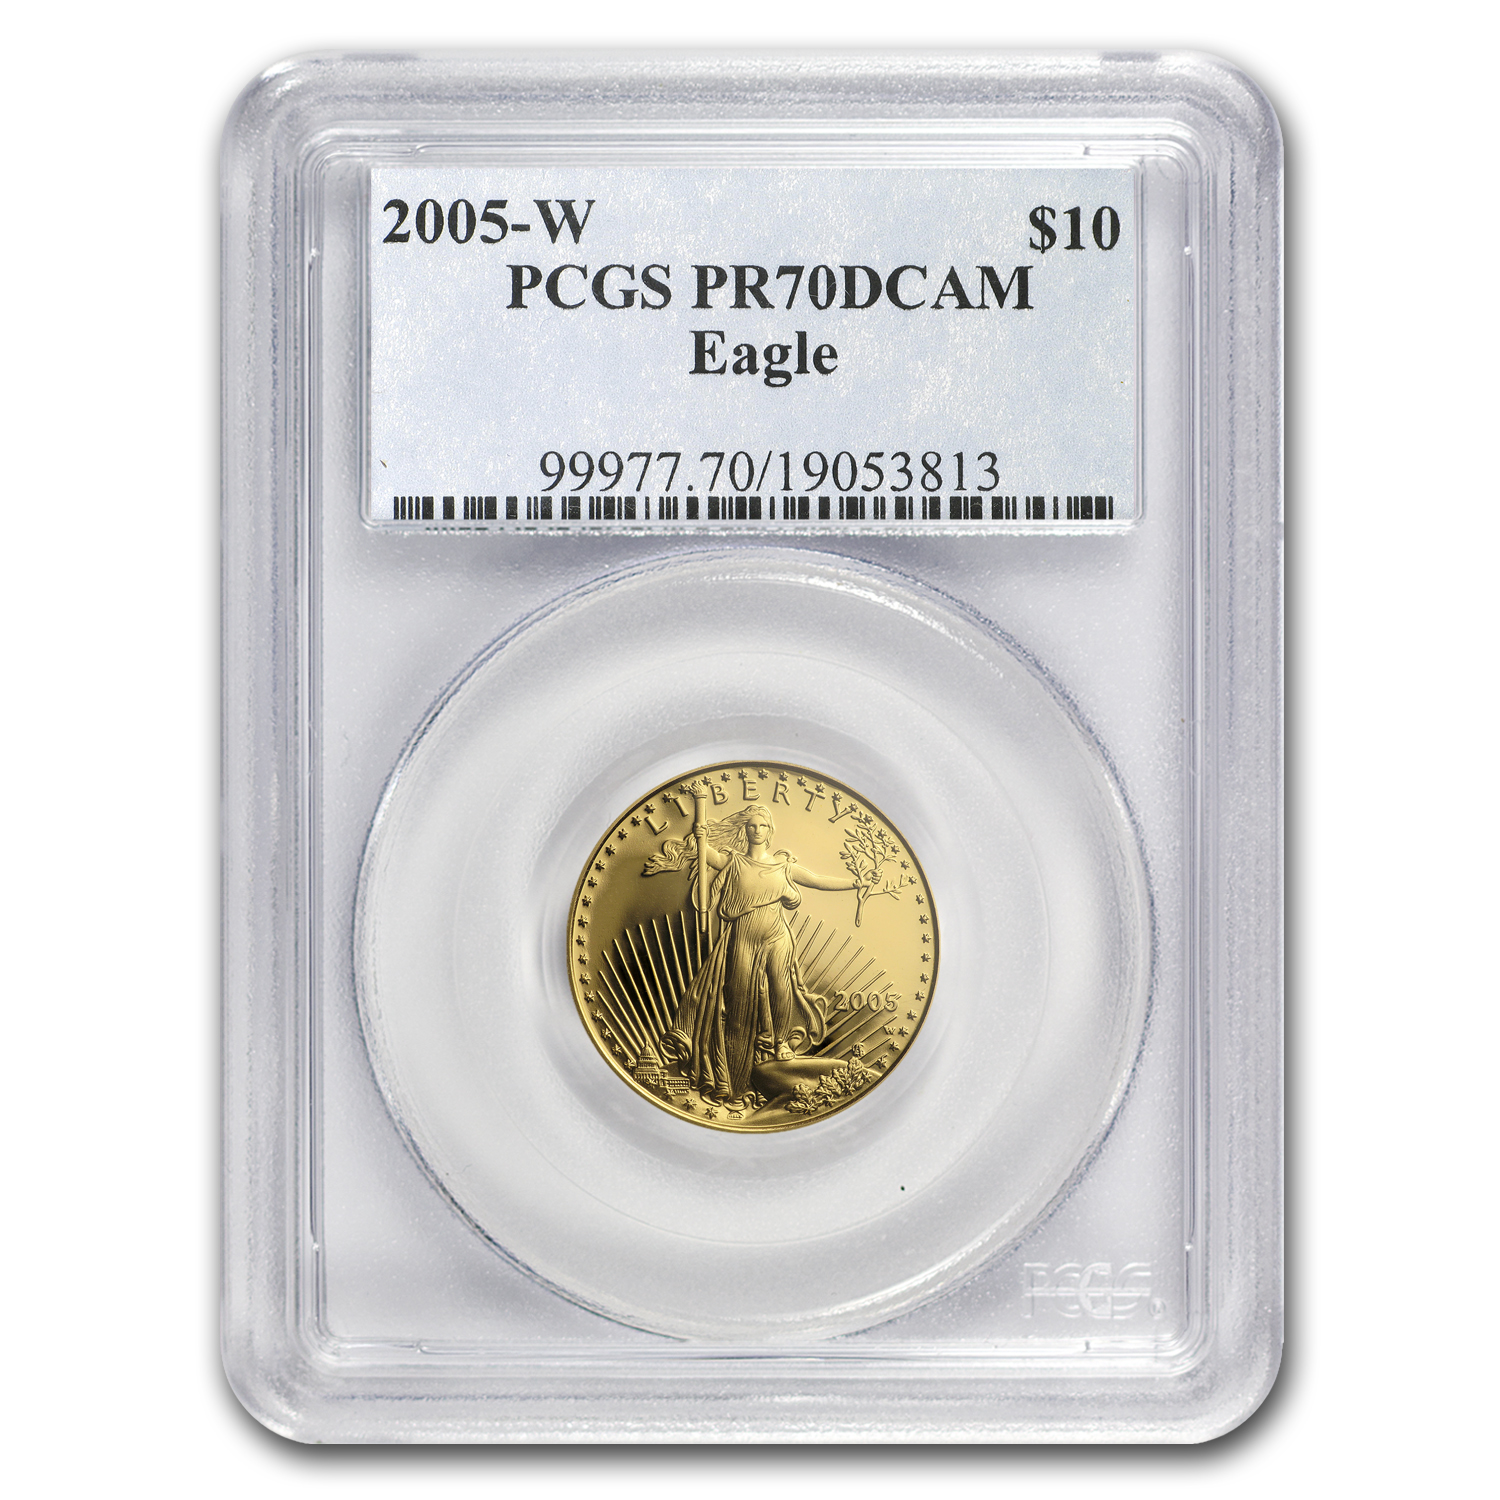 2005-W 1/4 oz Proof Gold American Eagle PR-70 PCGS